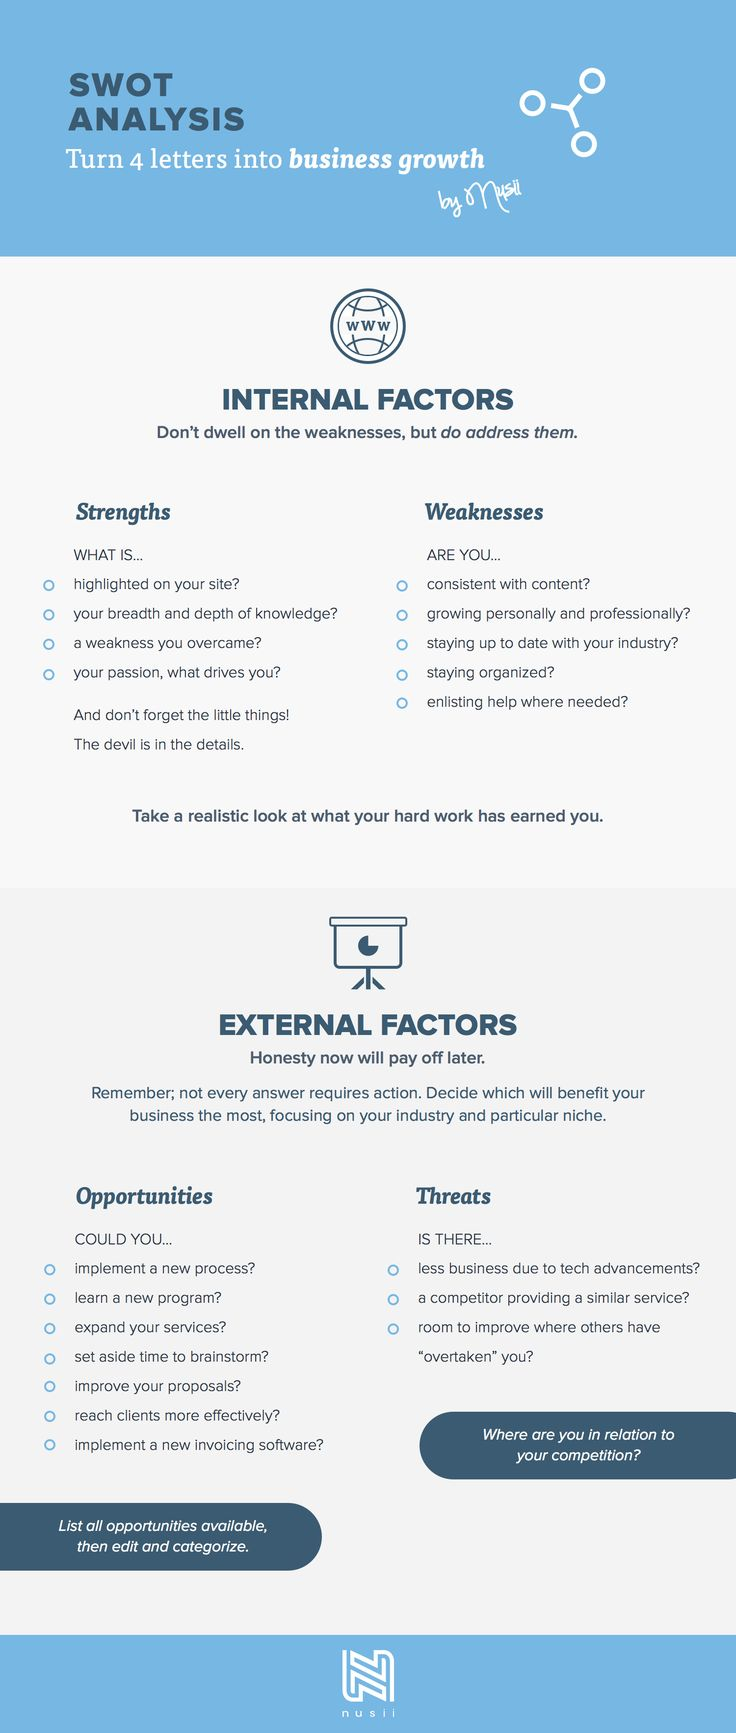 best ideas about swot analysis strategic do you know what your current business strengths and weaknesses are in relation to others swot analysis can get your business into gear and on track